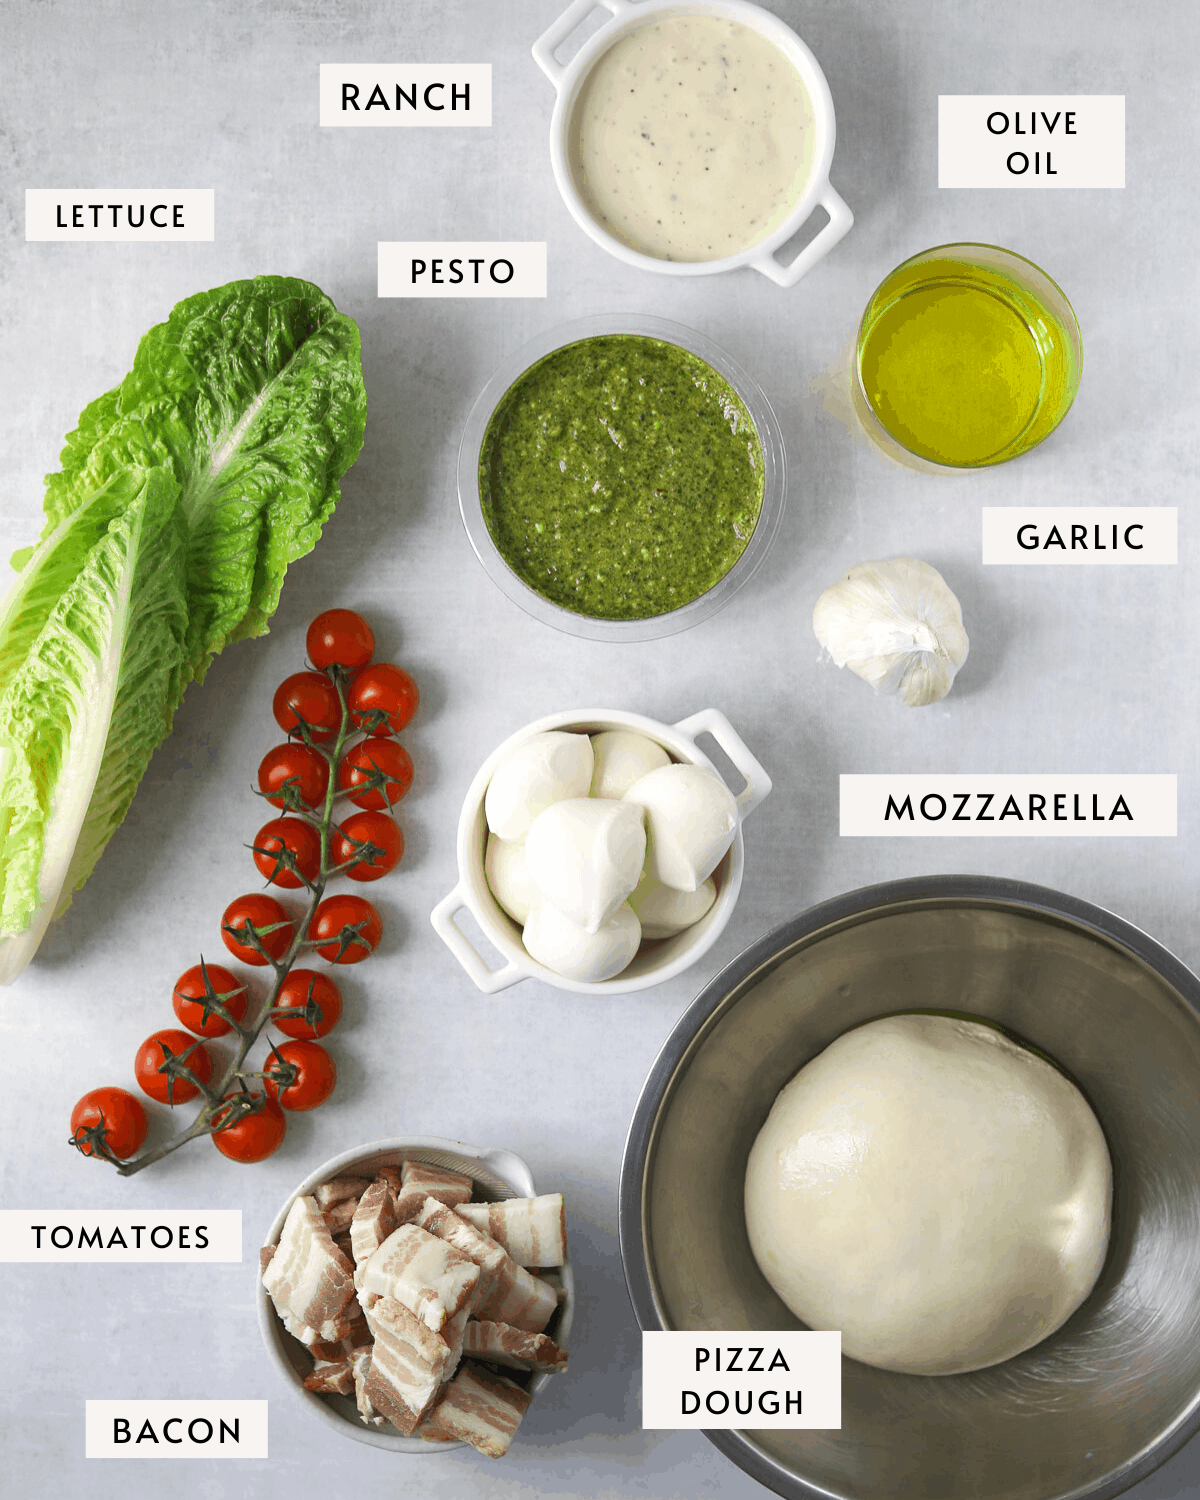 BLT Pizza ingredients, pizza dough, tomatoes, ranch dressing, basil pesto, olive oil